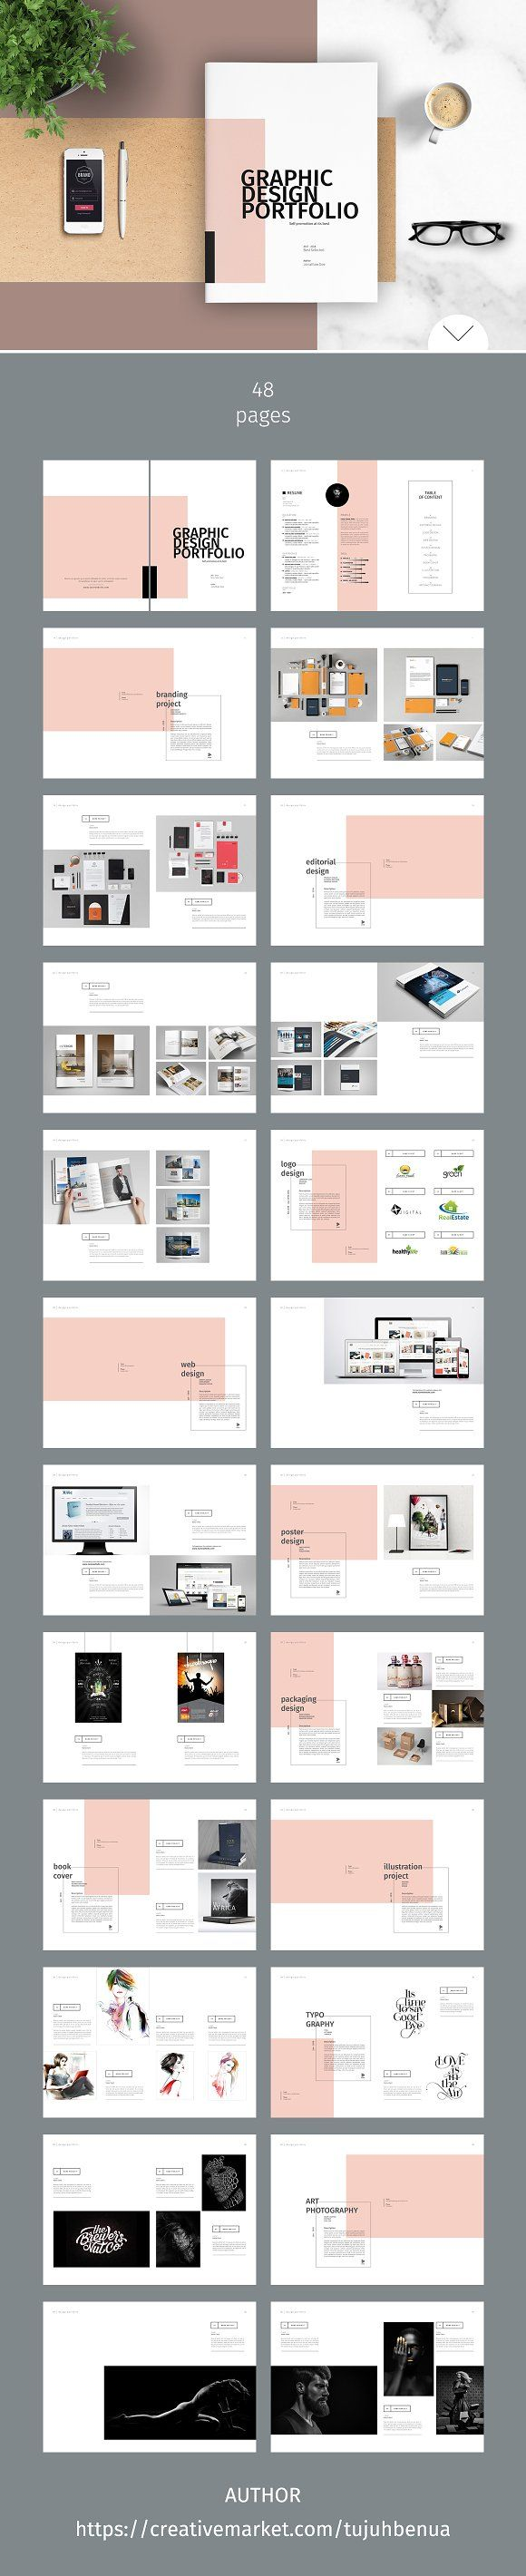 graphic design portfolio template by tujuhbenua on creativemarket - Sample Industrial Design Er